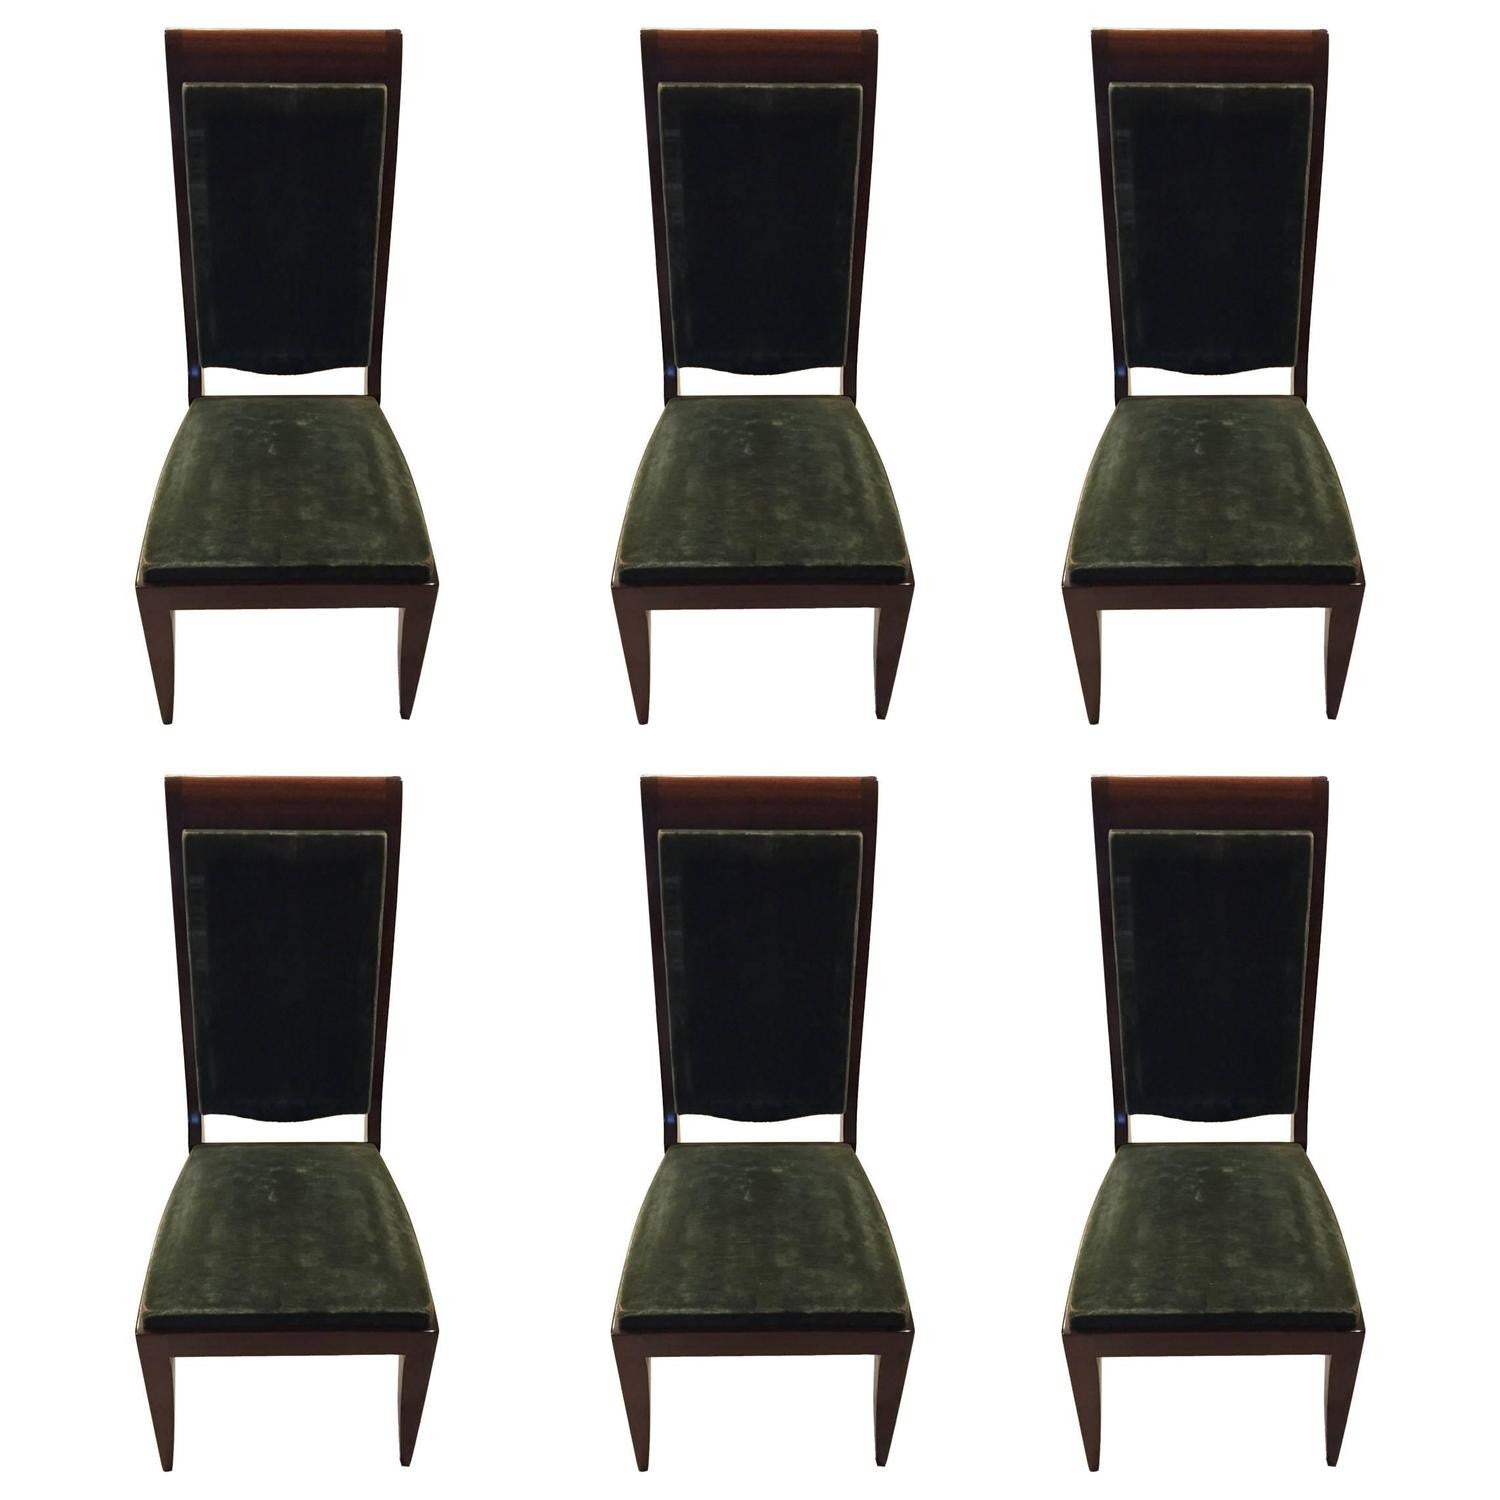 Six Gaston Poisson Attributed French Art Deco Dining Chairs – 1 of